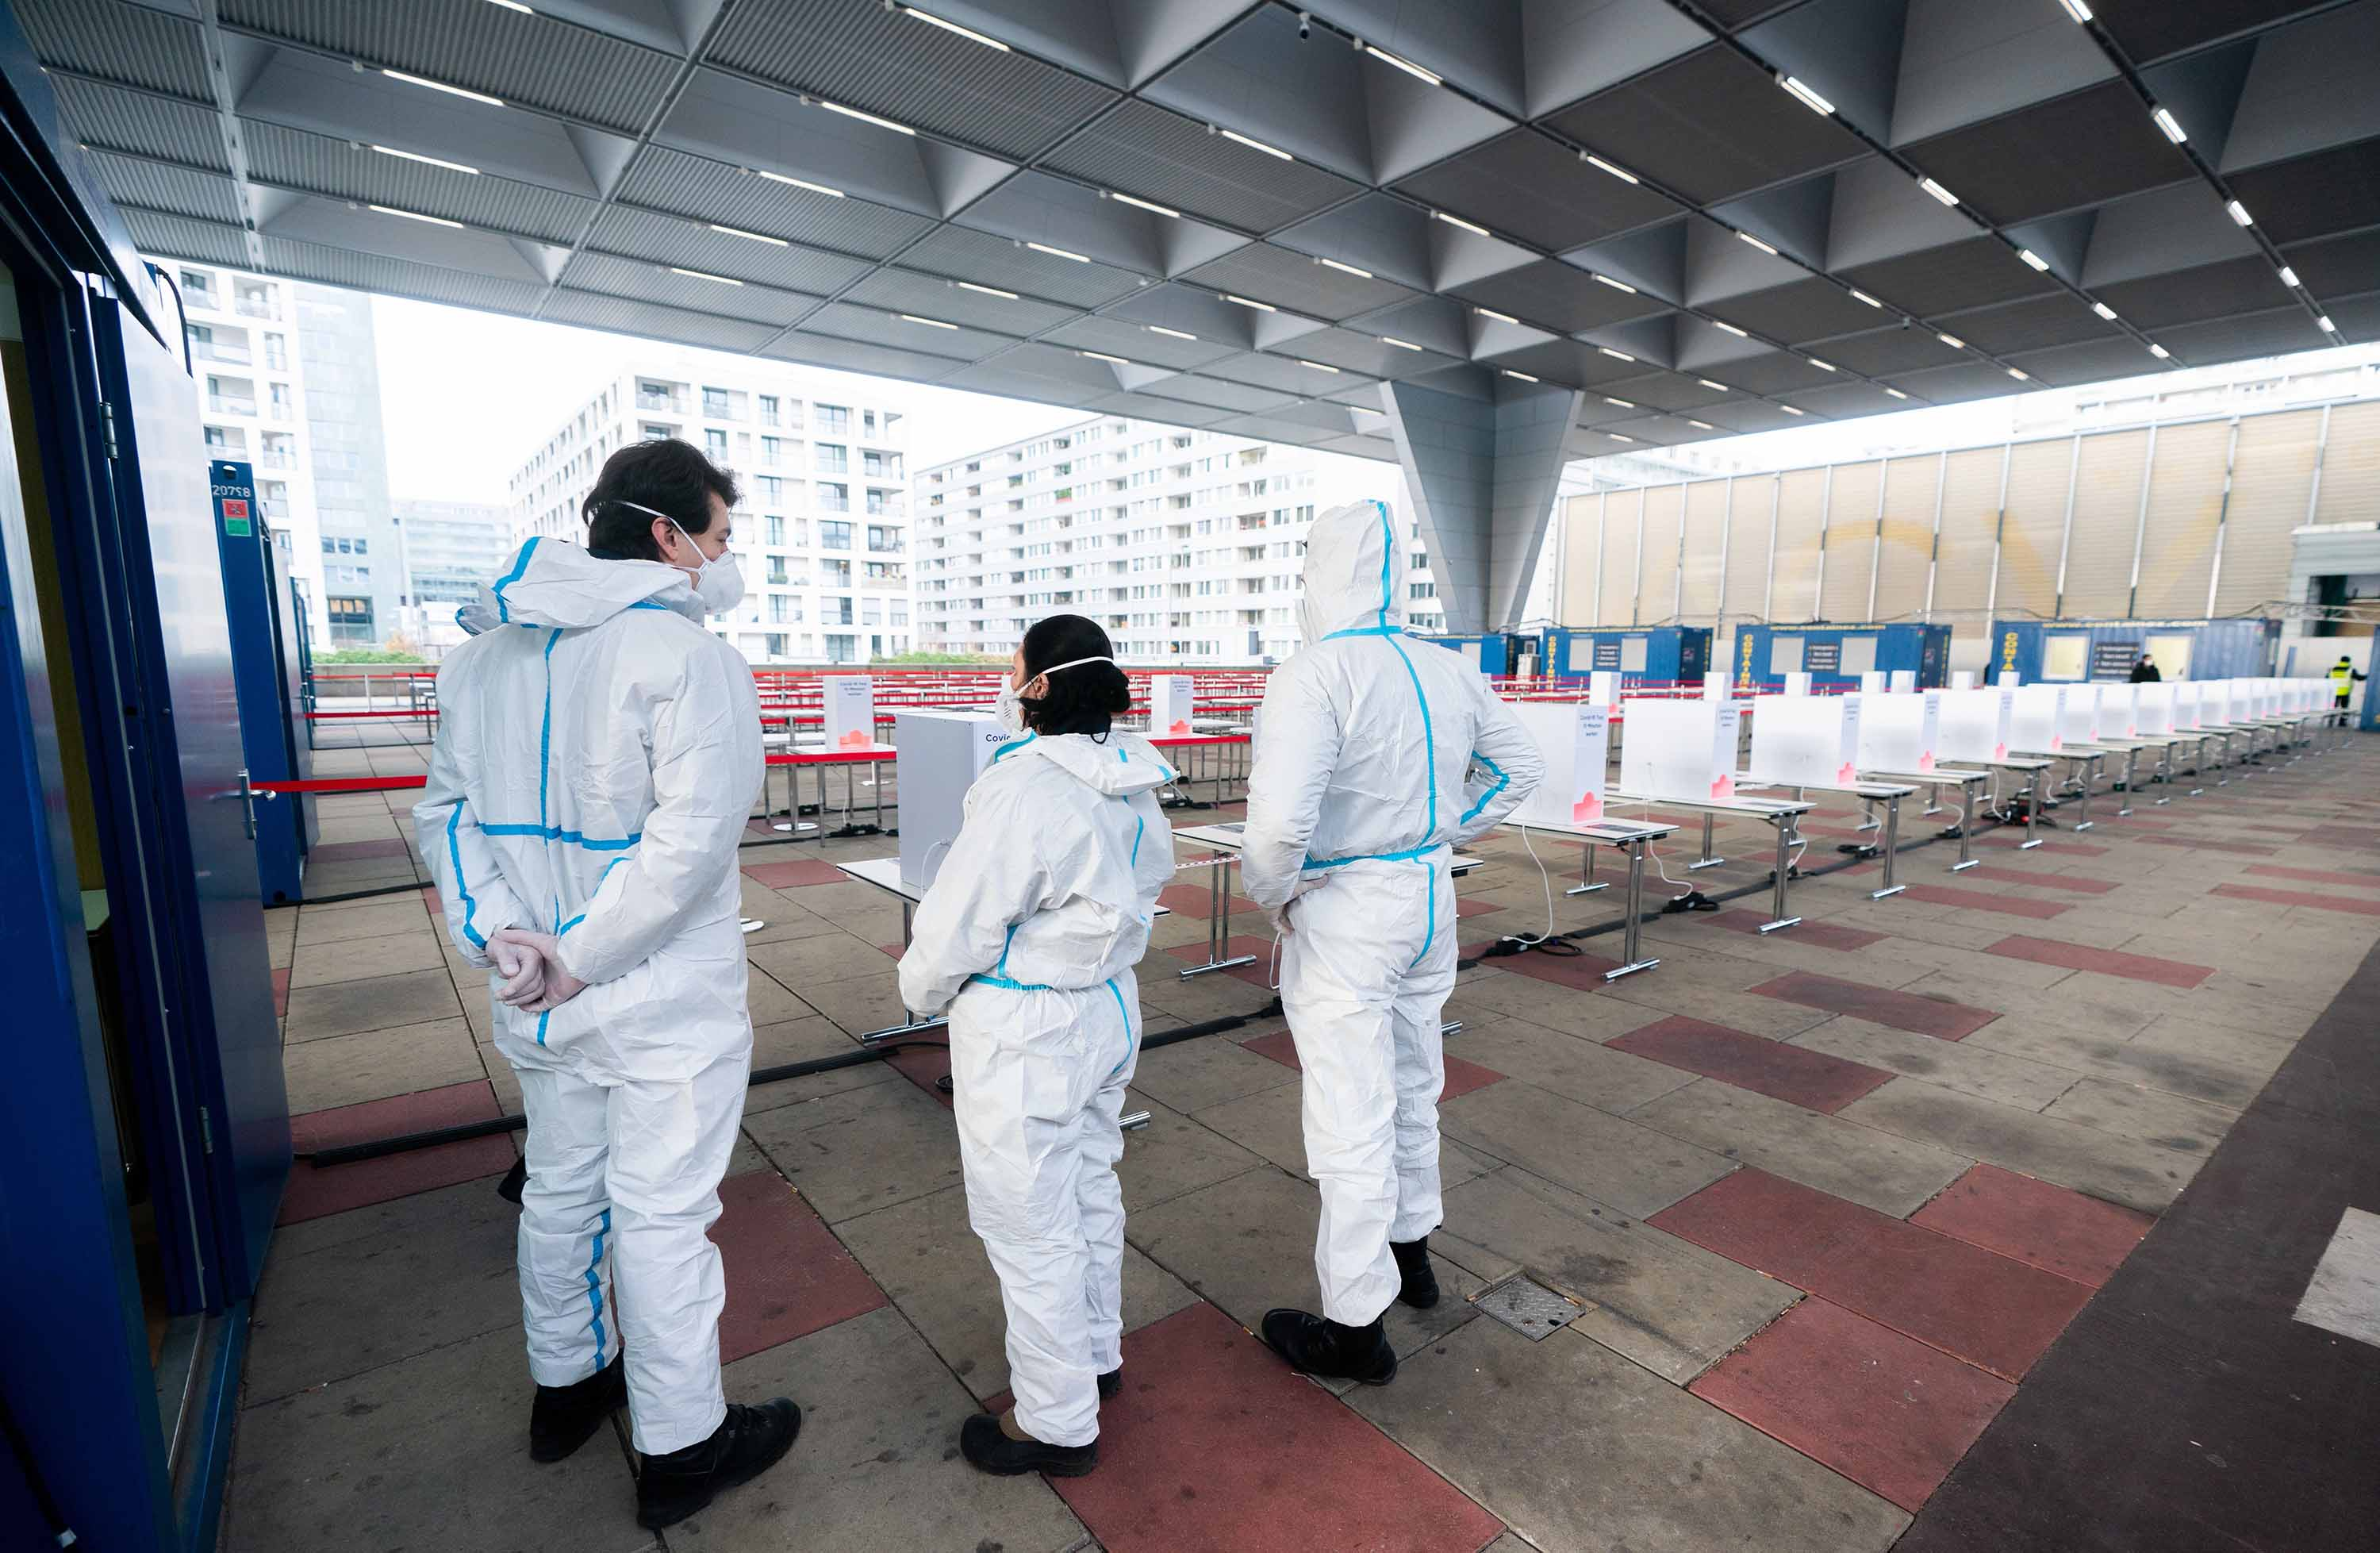 Medical staff at a conference center in Vienna on November 30, where Austria's biggest coronavirus test center has been set up.